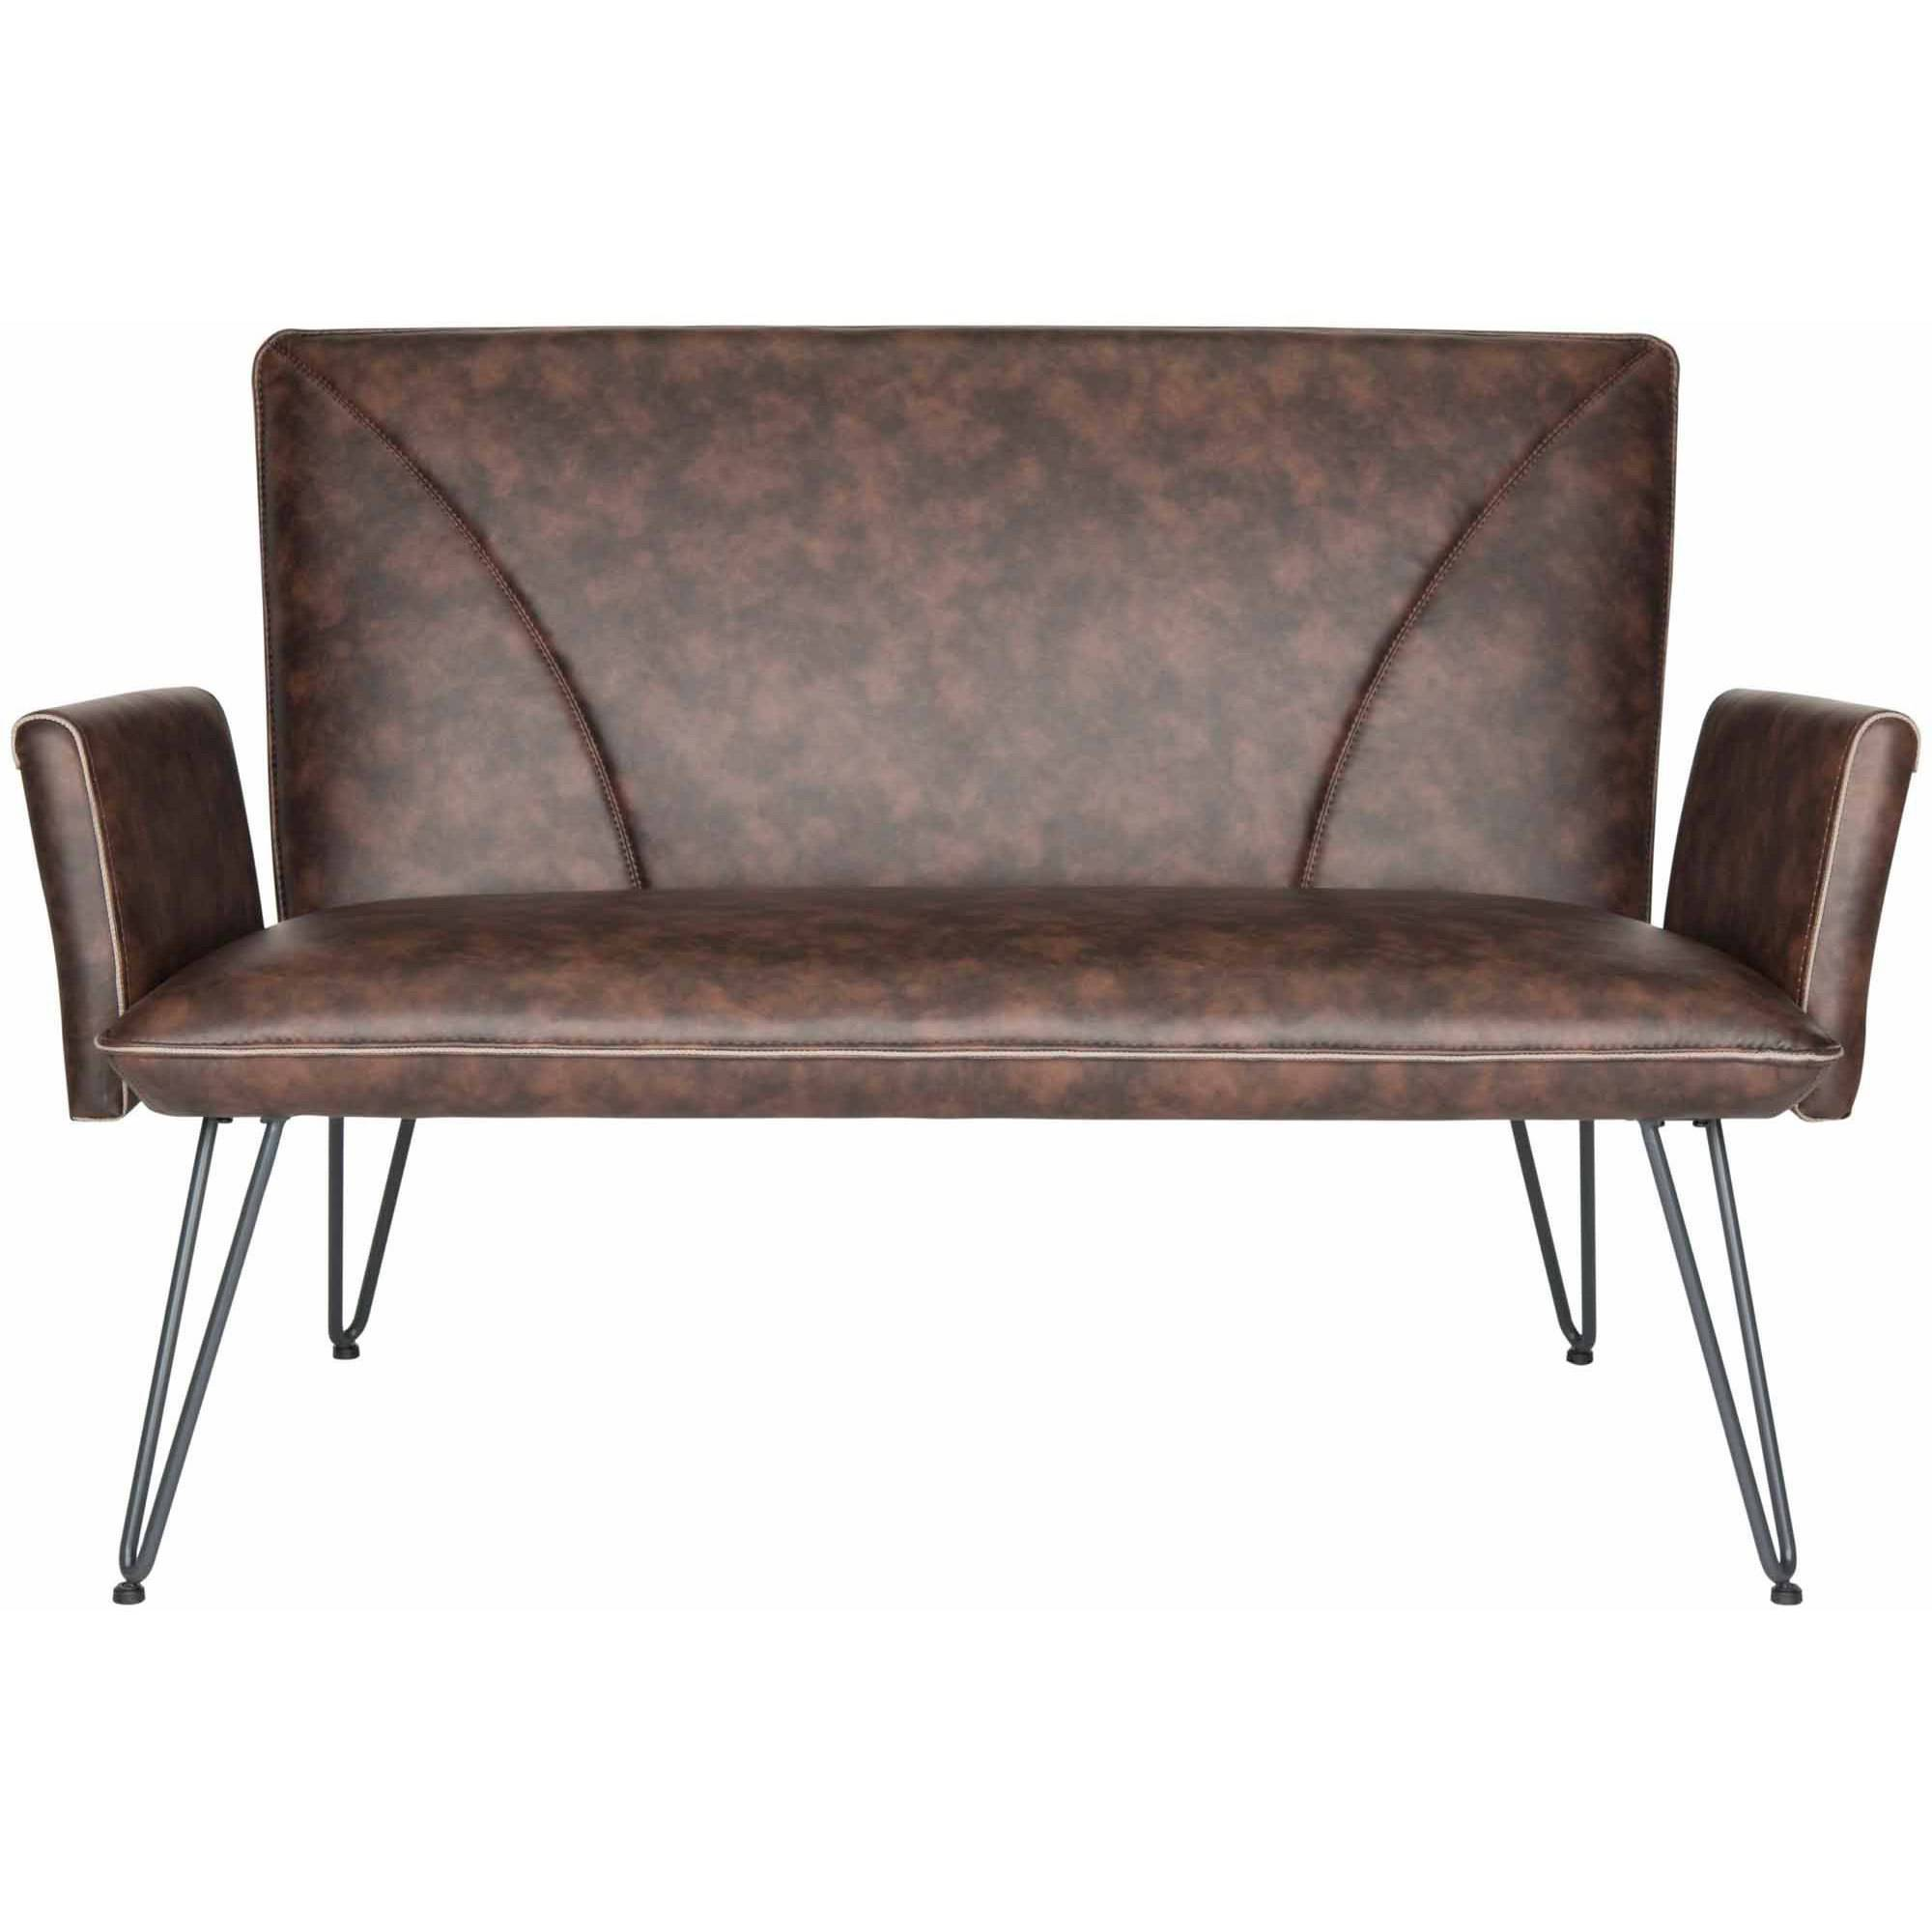 Safavieh Johaness Bicast Leather Settee, Multiple Colors